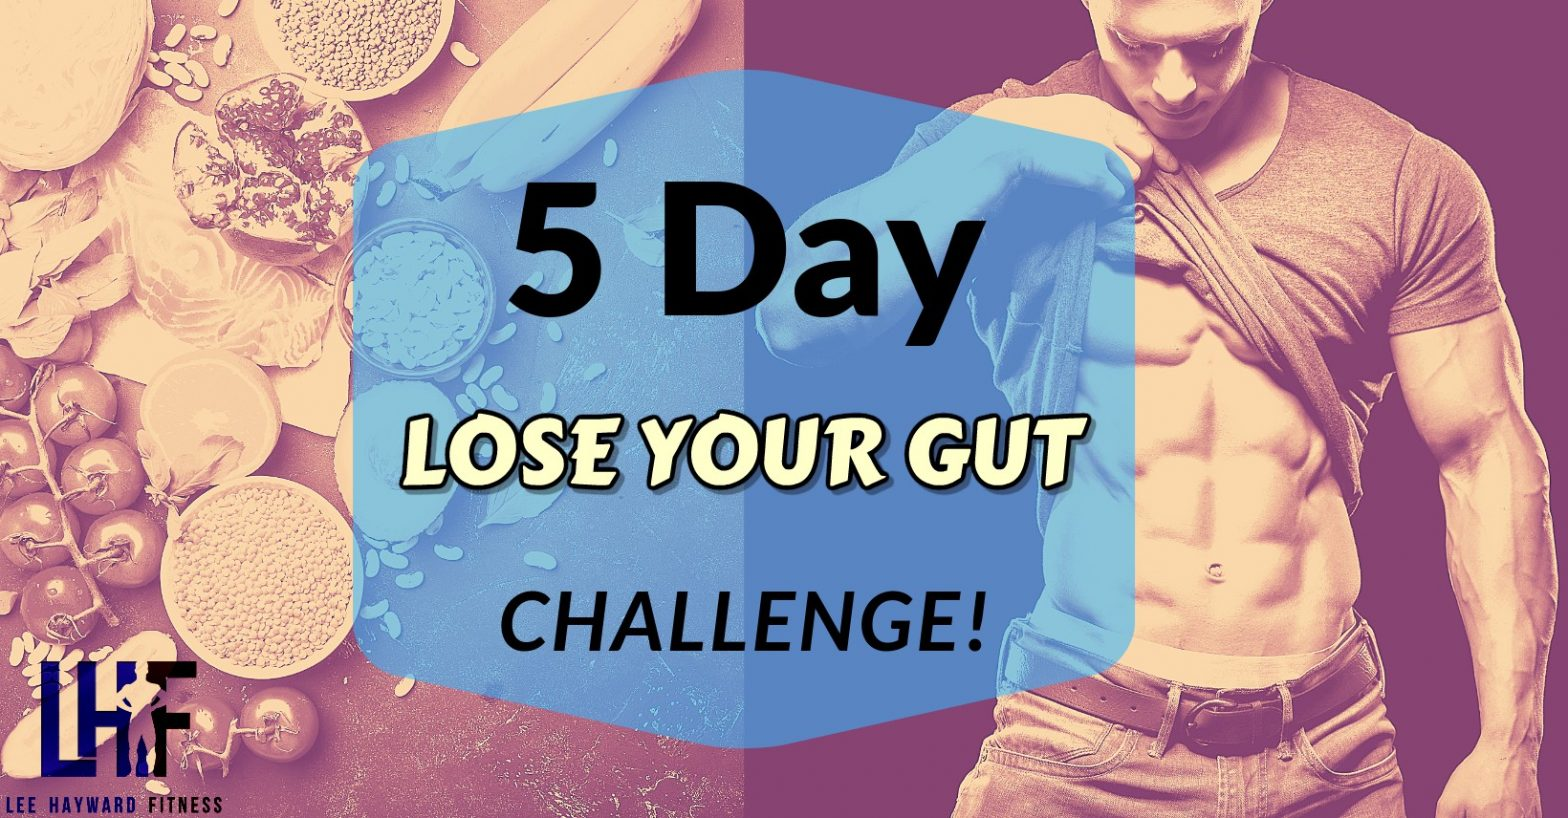 5 Day Lose Your Gut Challenge